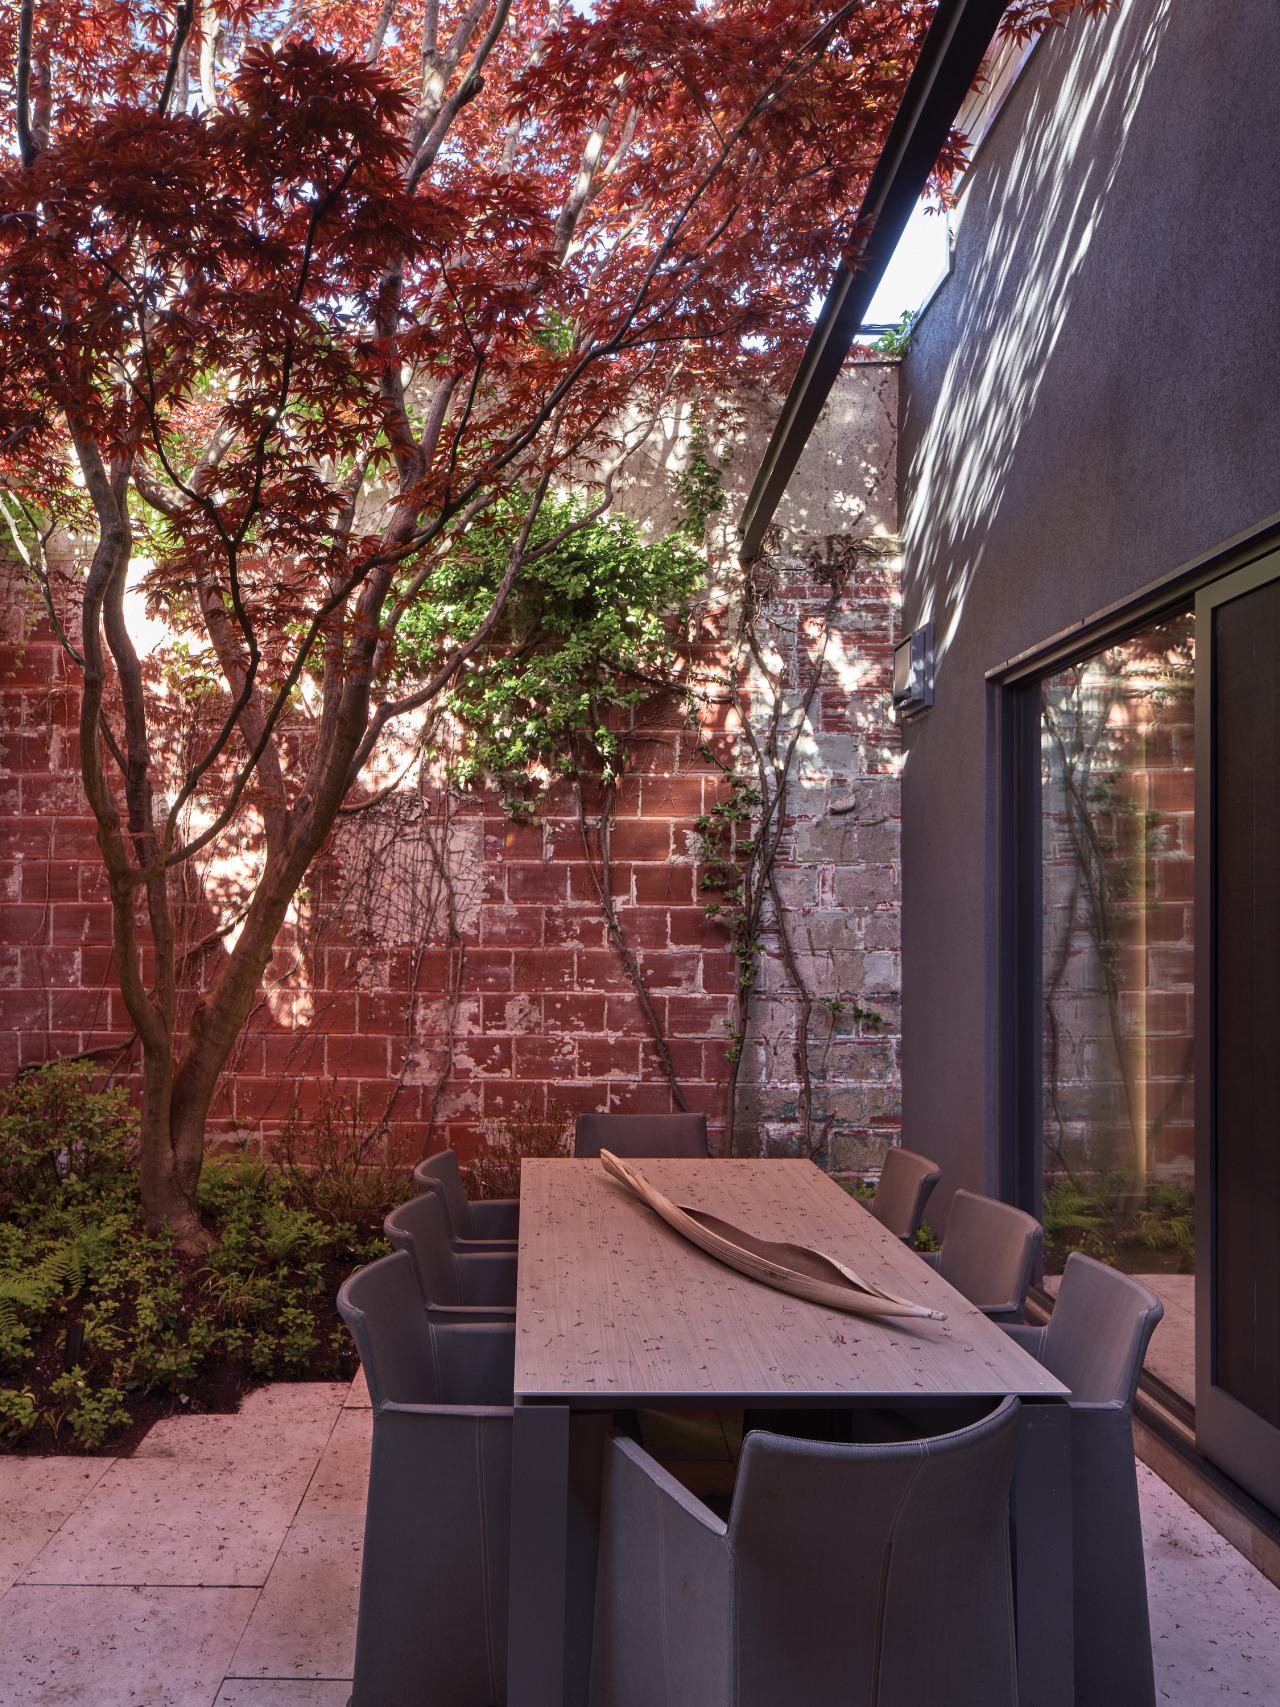 The Ivy-clad landscaped courtyards are a feature of